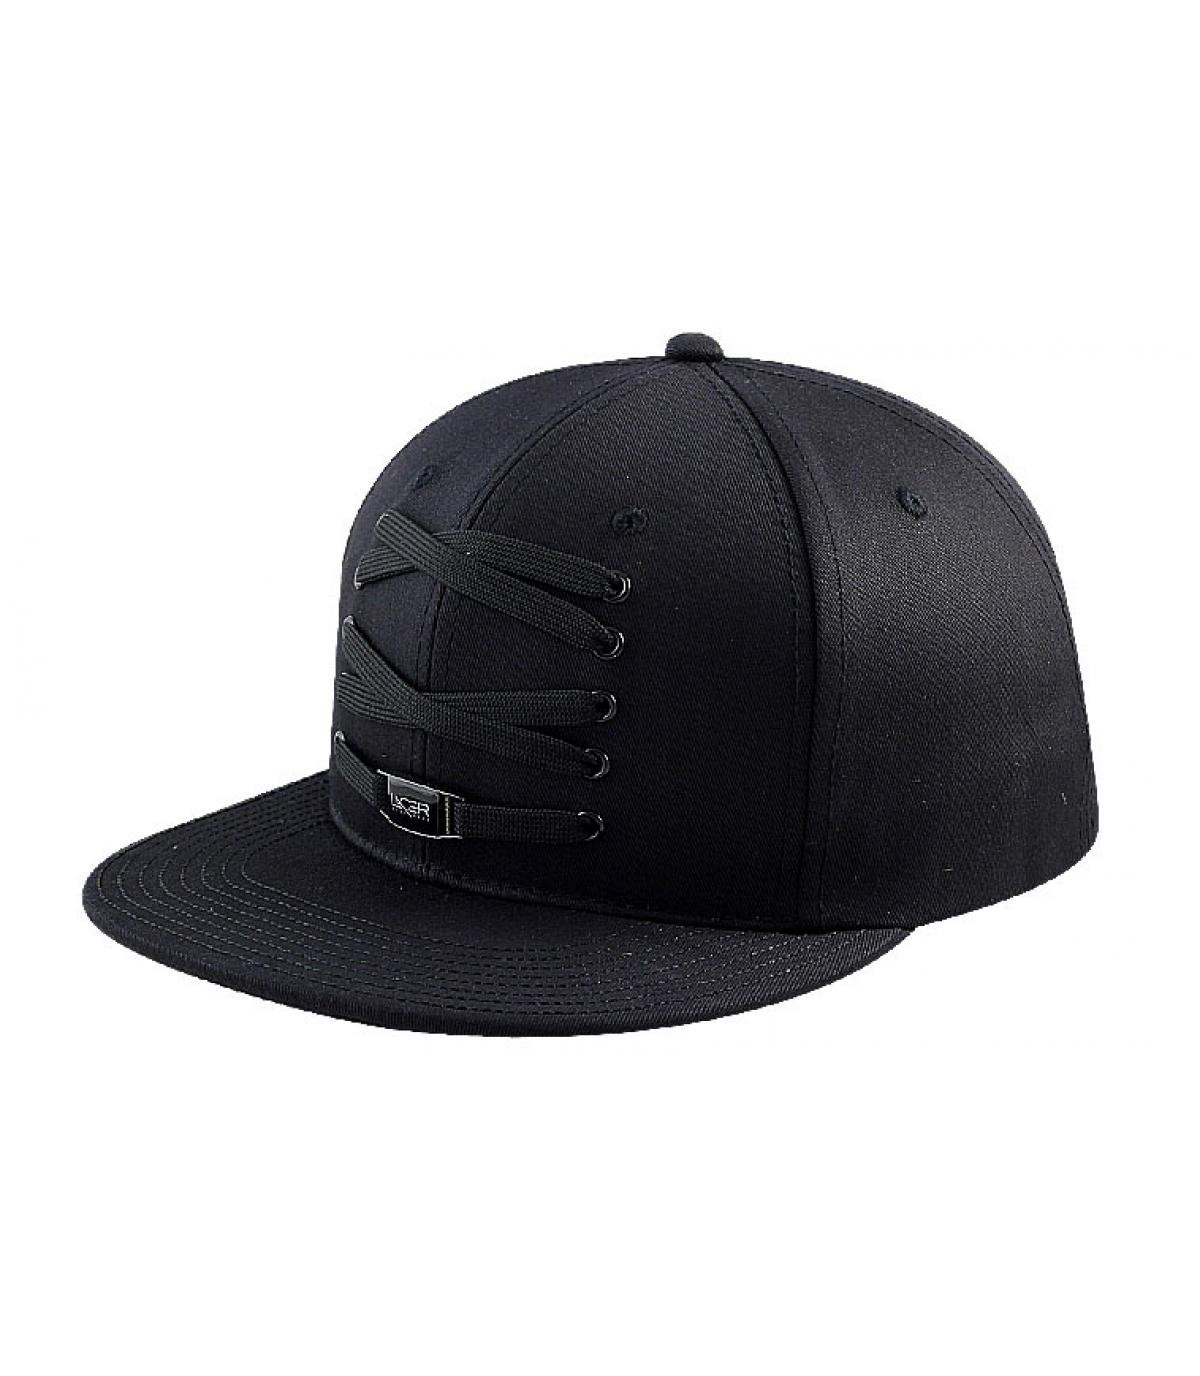 Total black Lacer cap - Snapback Lacer black sole by Lacer. 8d0ac7cf696